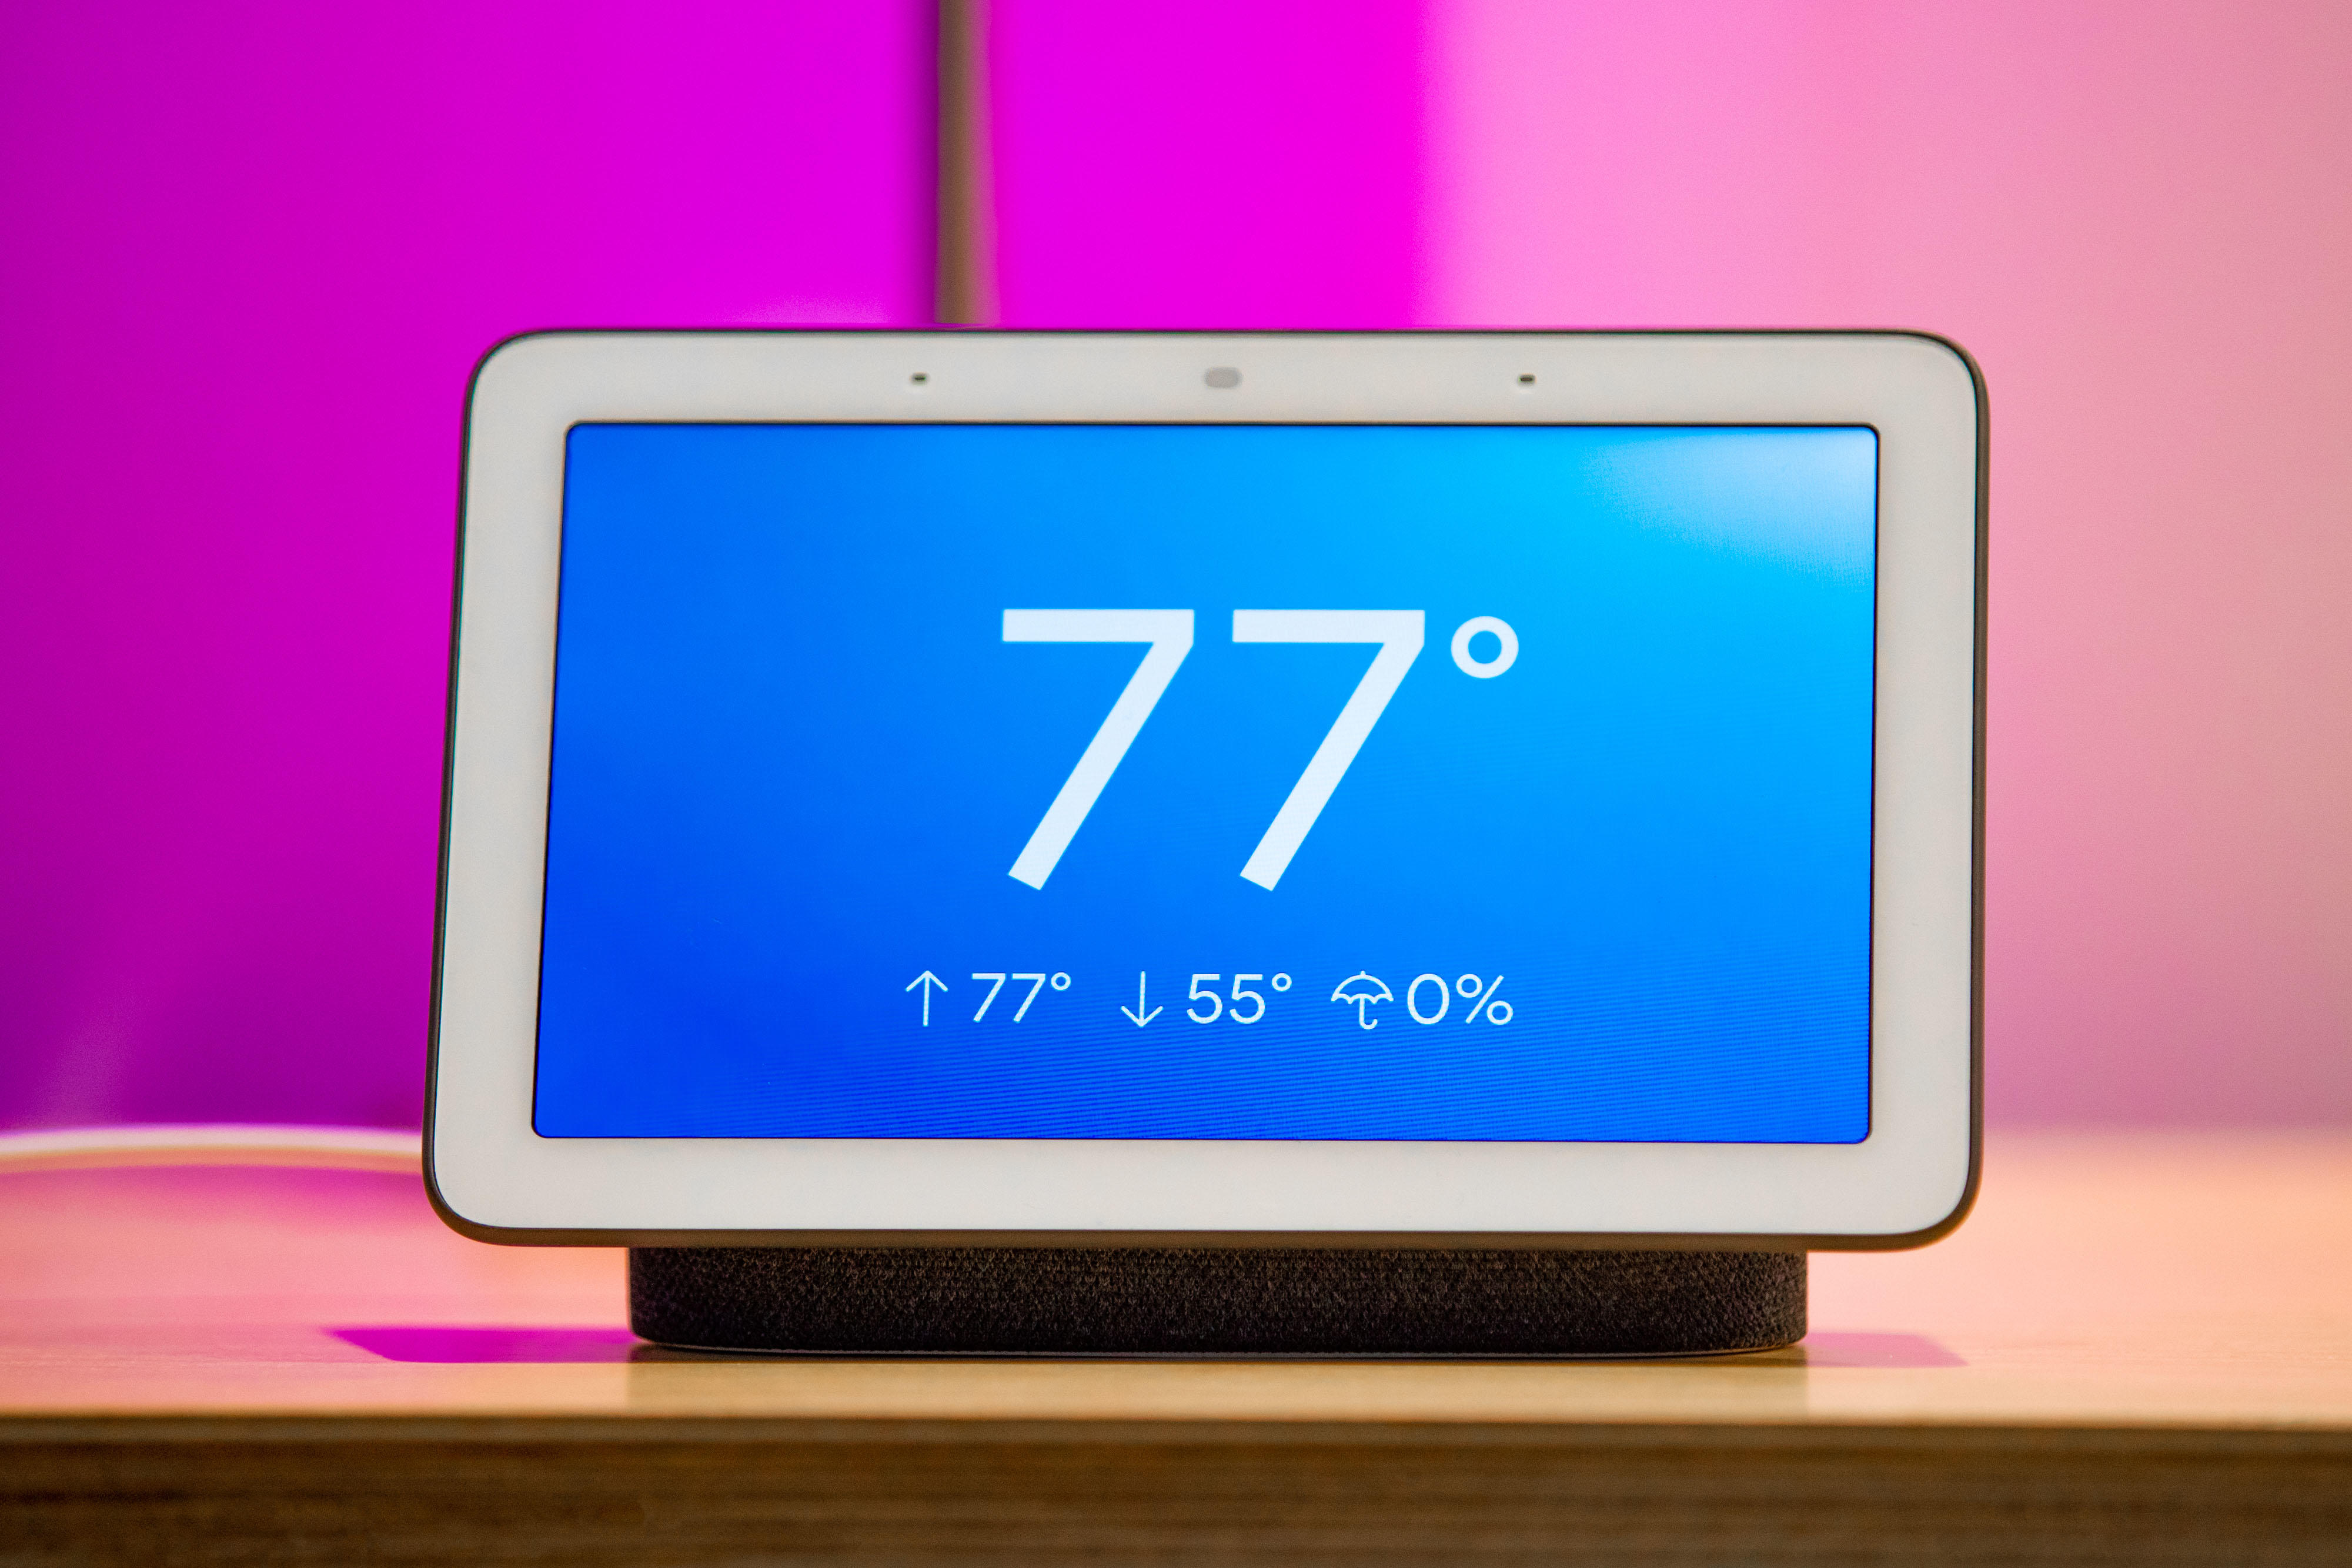 google-home-hub-proactive-notifications-1720